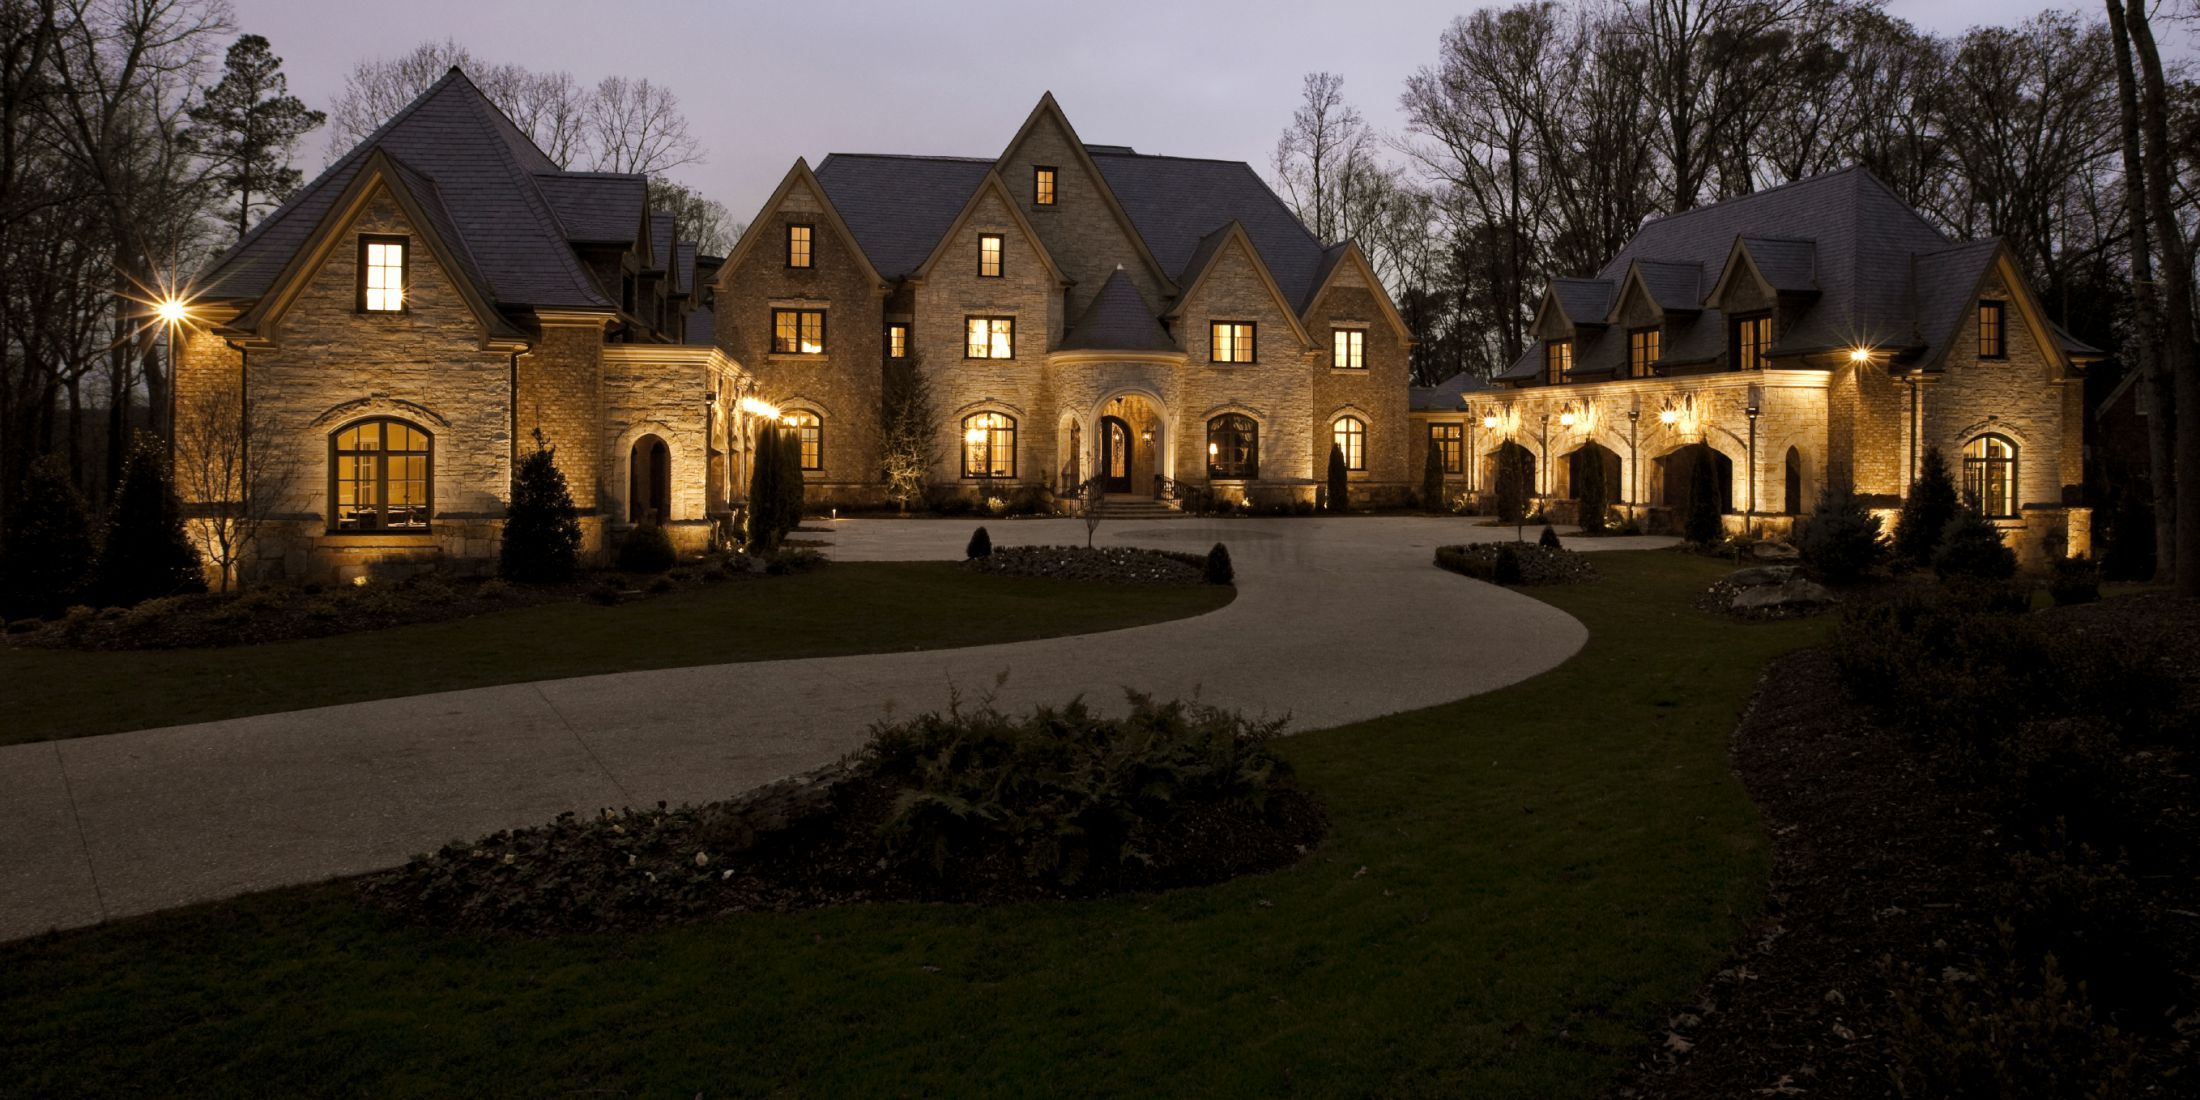 Greenwich Real Estate | Greenwich Homes for Sale